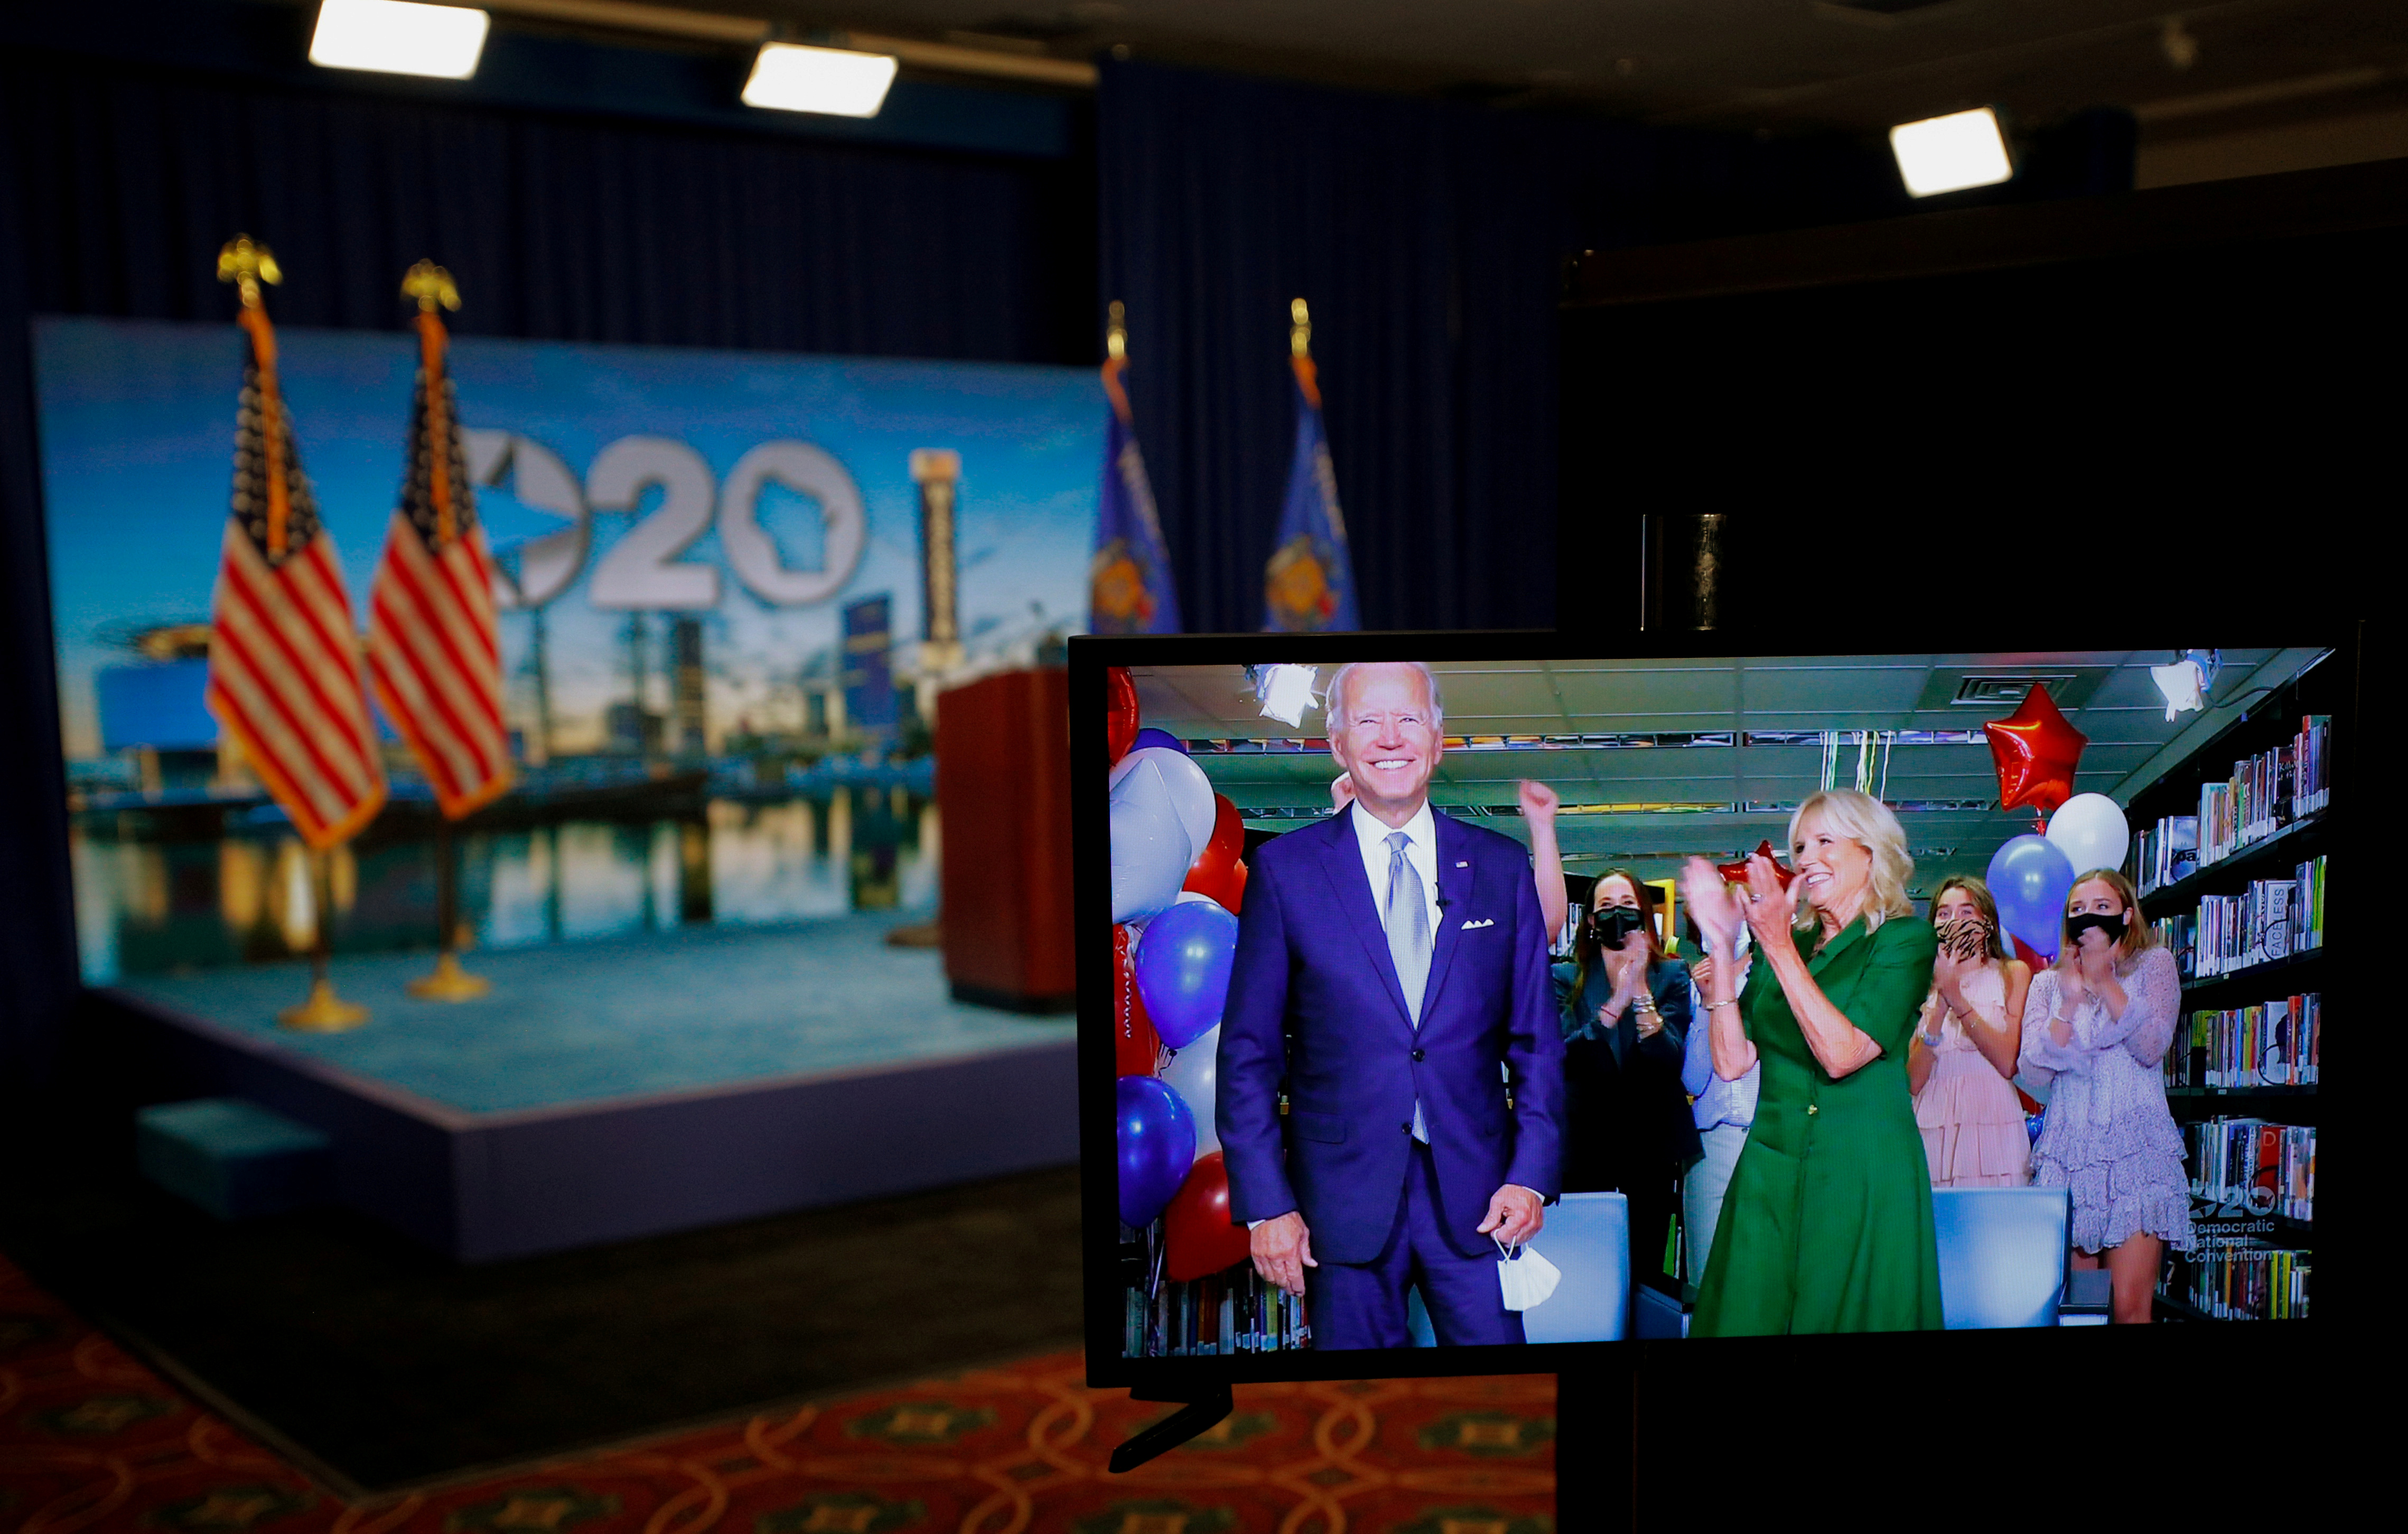 The Democratic National Convention Did Not Take Place